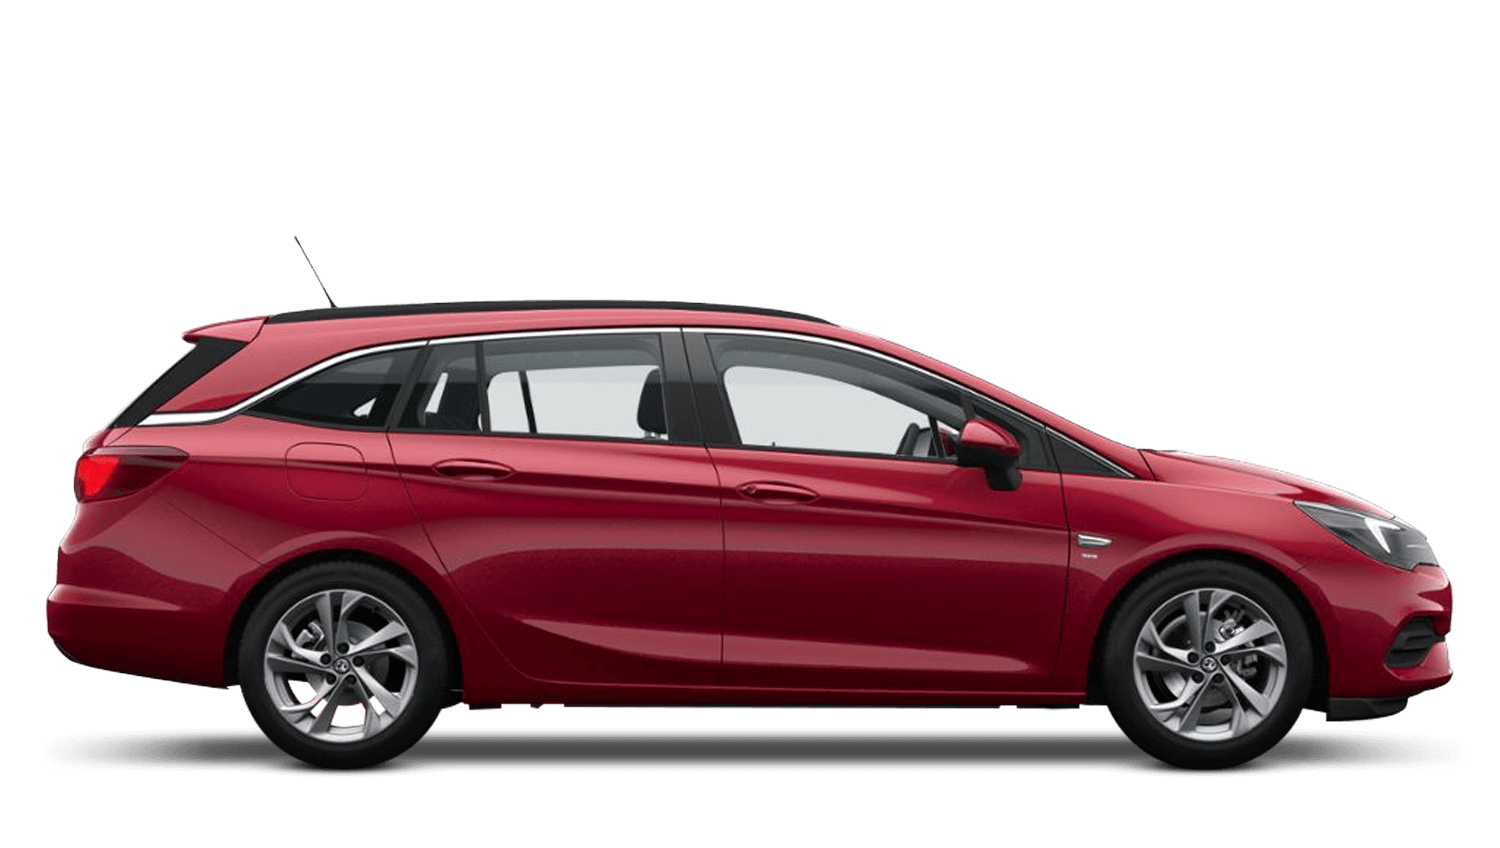 Hot Red (Premium) Vauxhall Astra Sports Tourer New